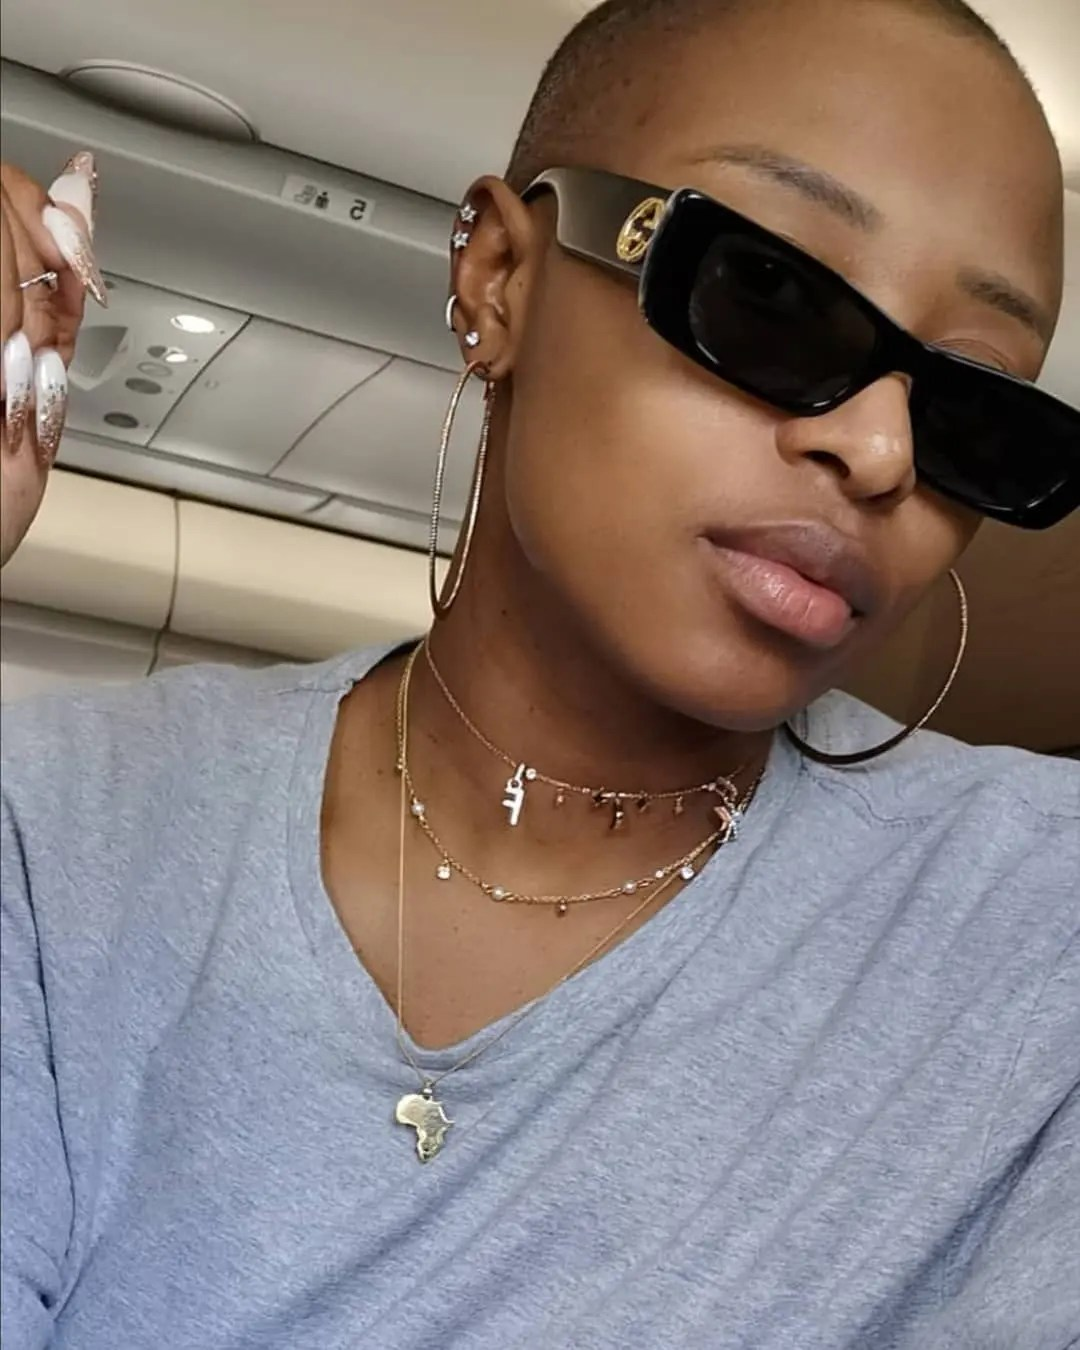 DJ Zinhle looks so hot in her new Bald look – Picture